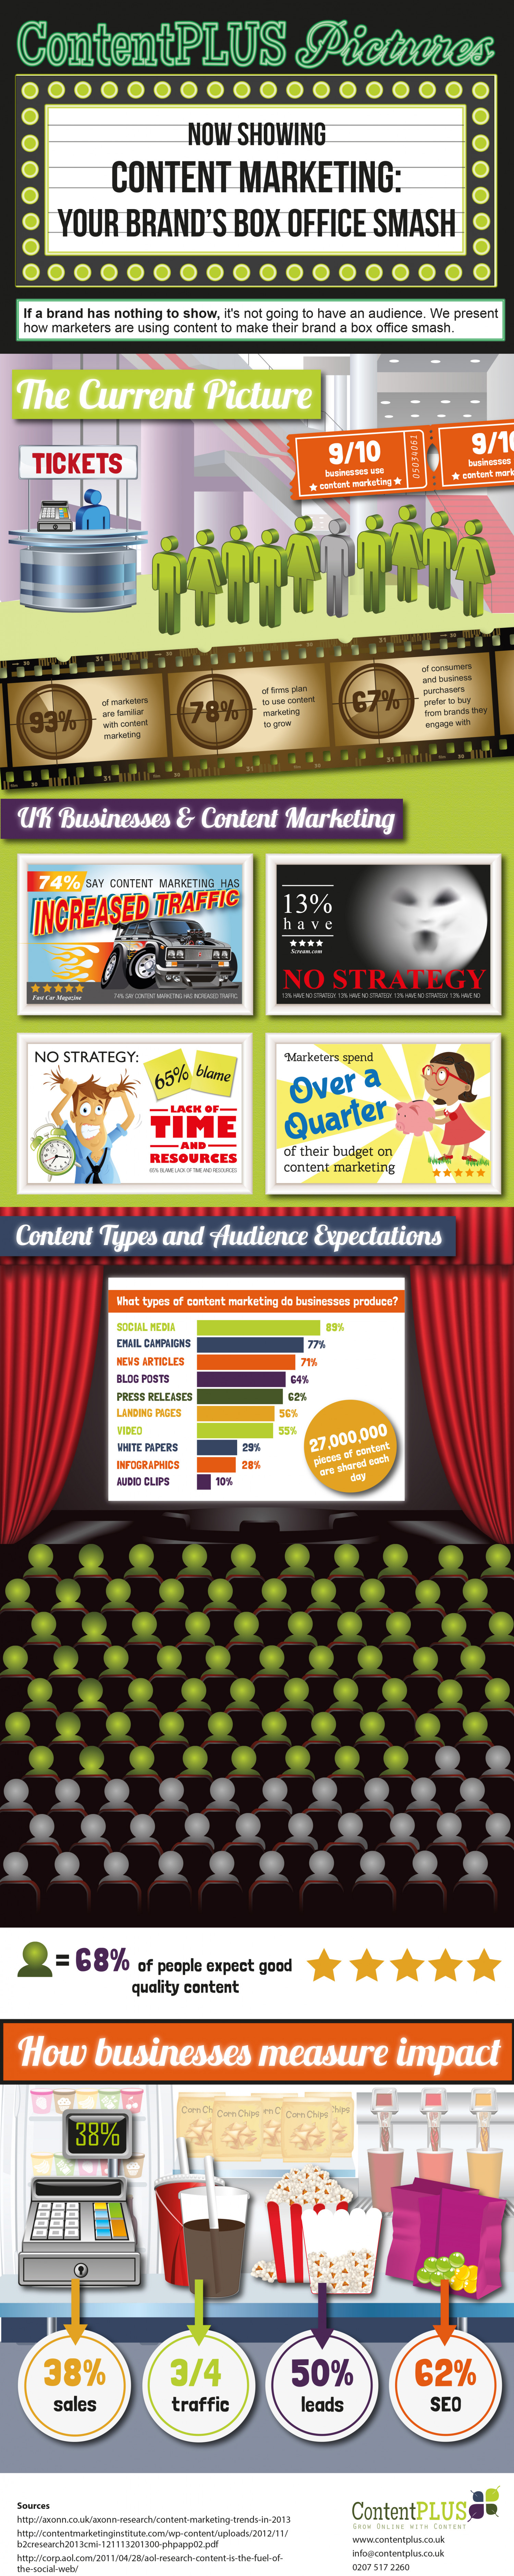 Content Marketing: Your brand's box office smash Infographic